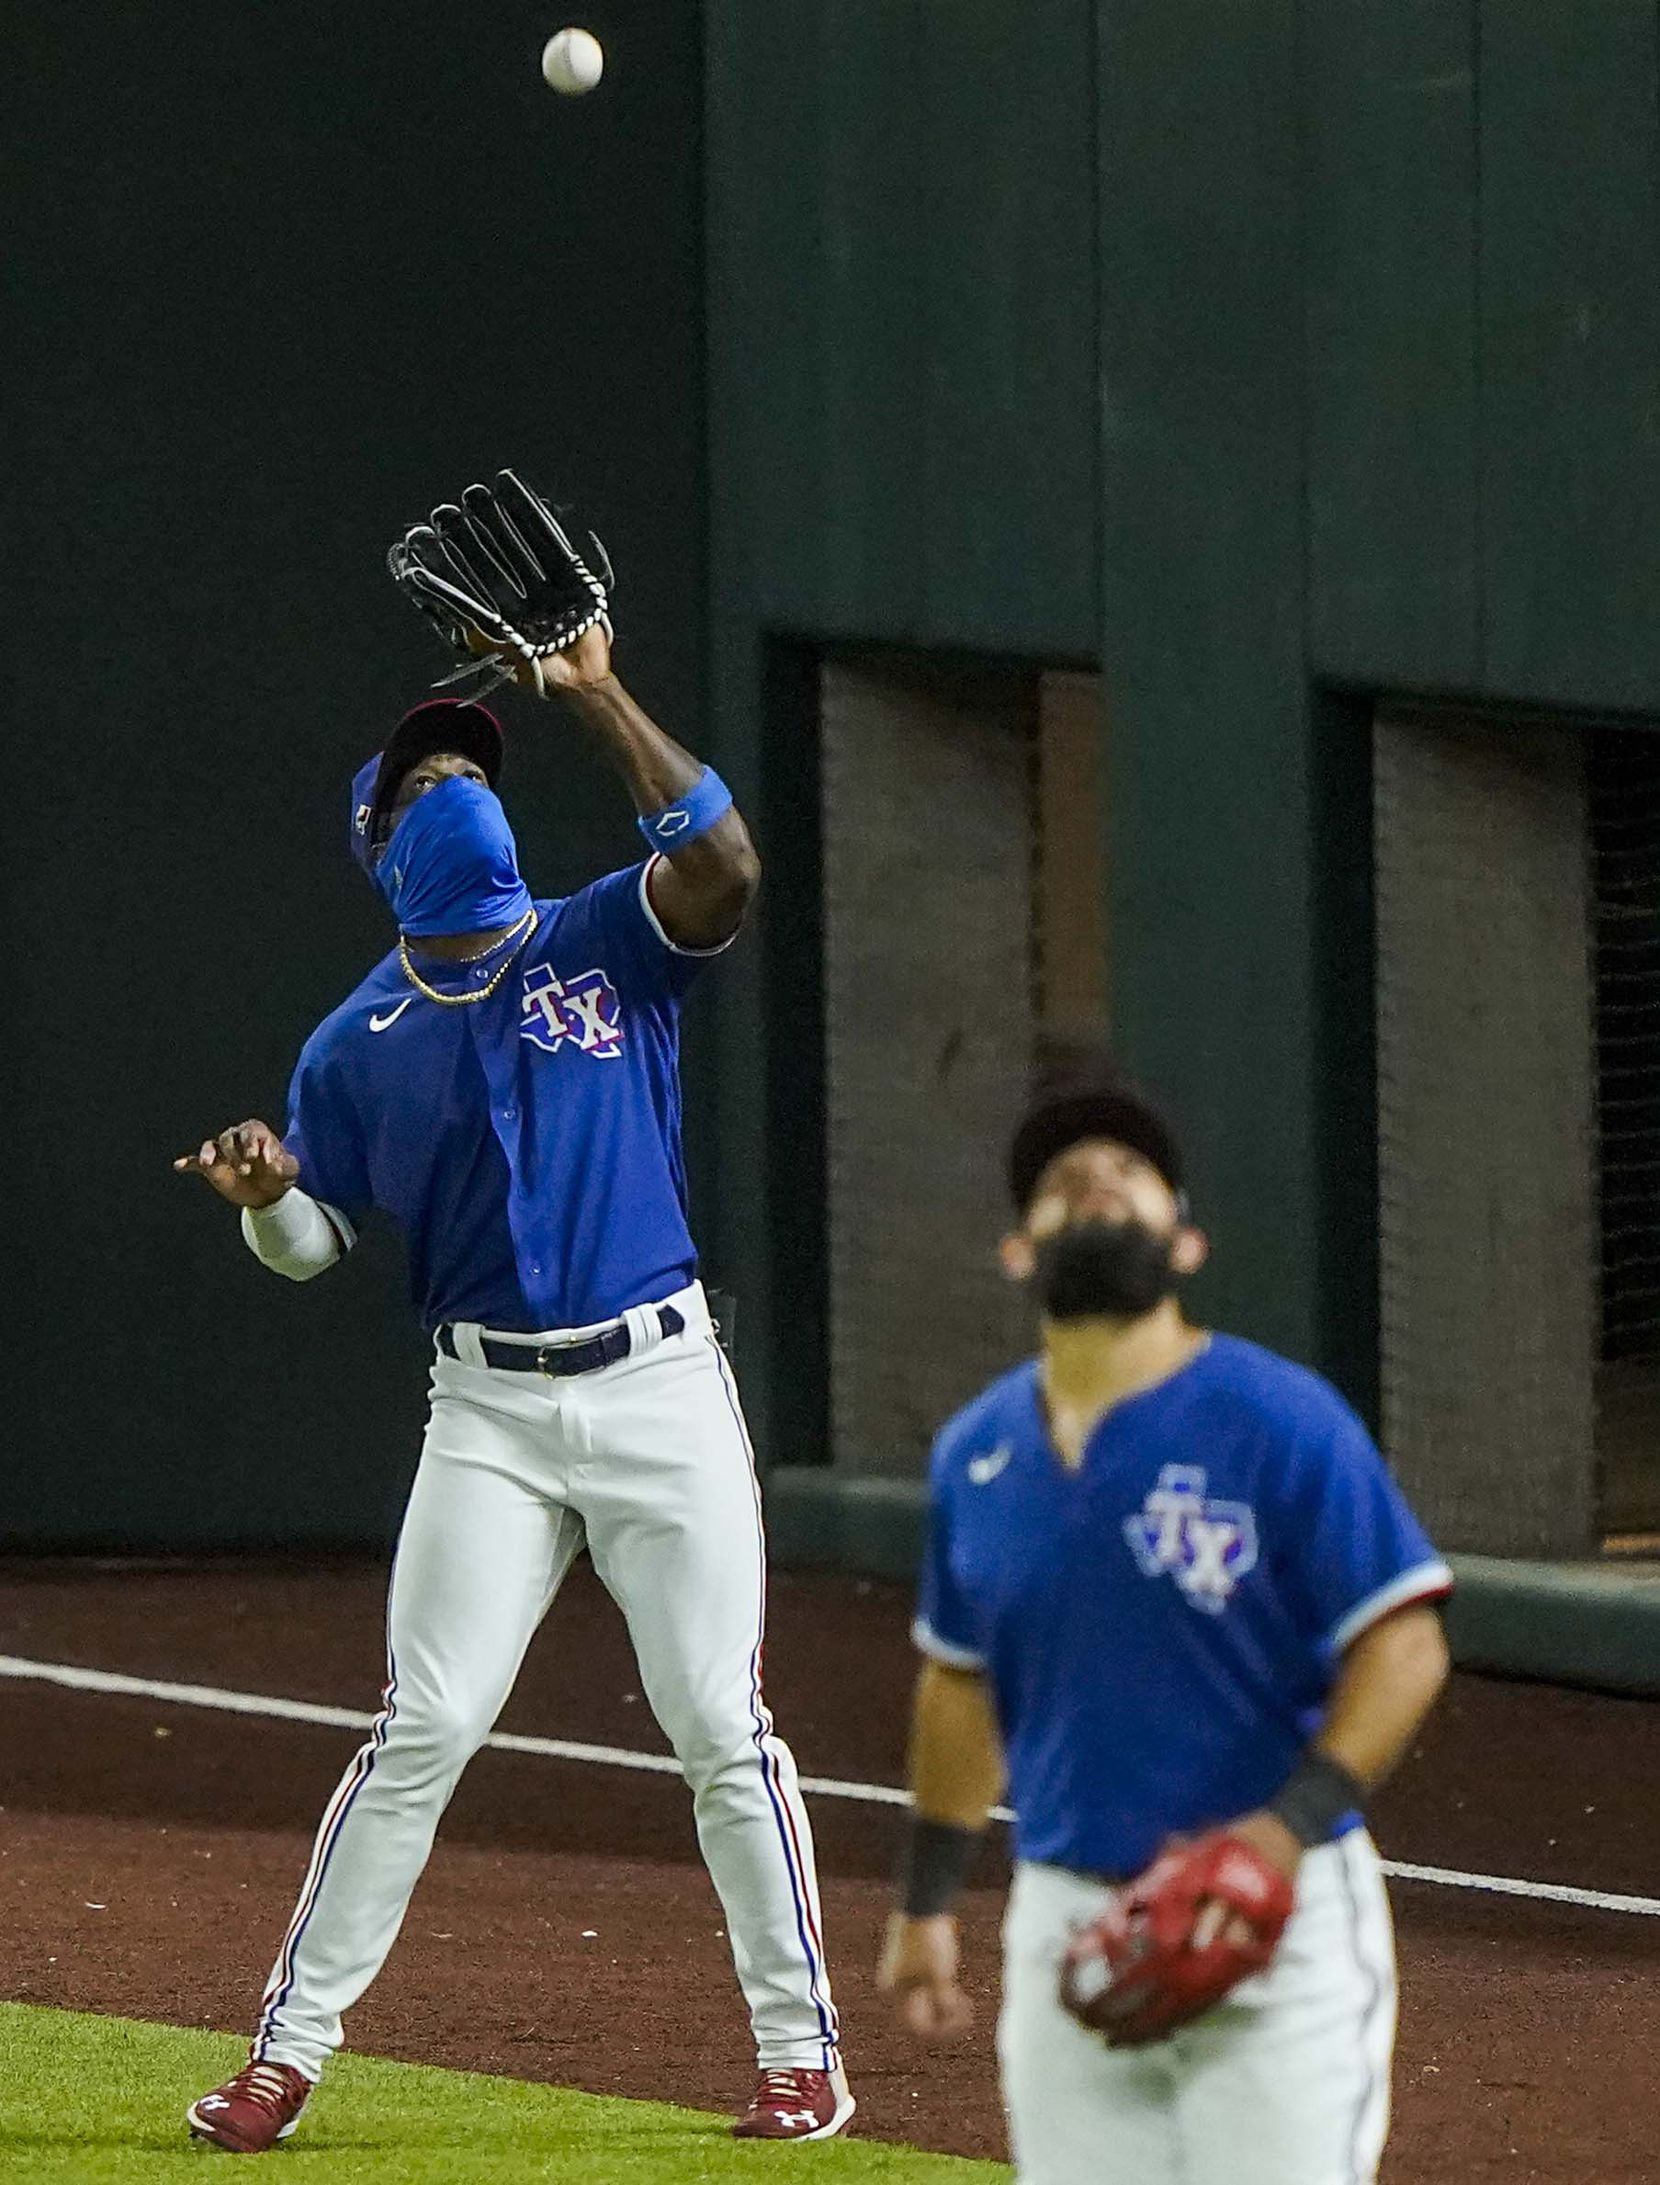 Texas Rangers outfielder Adolis Garcia makes a catch on a fly ball off the bat of Colorado Rockies first baseman Daniel Murphy during the sixth inning of an exhibition game at Globe Life Field on Tuesday, July 21, 2020.